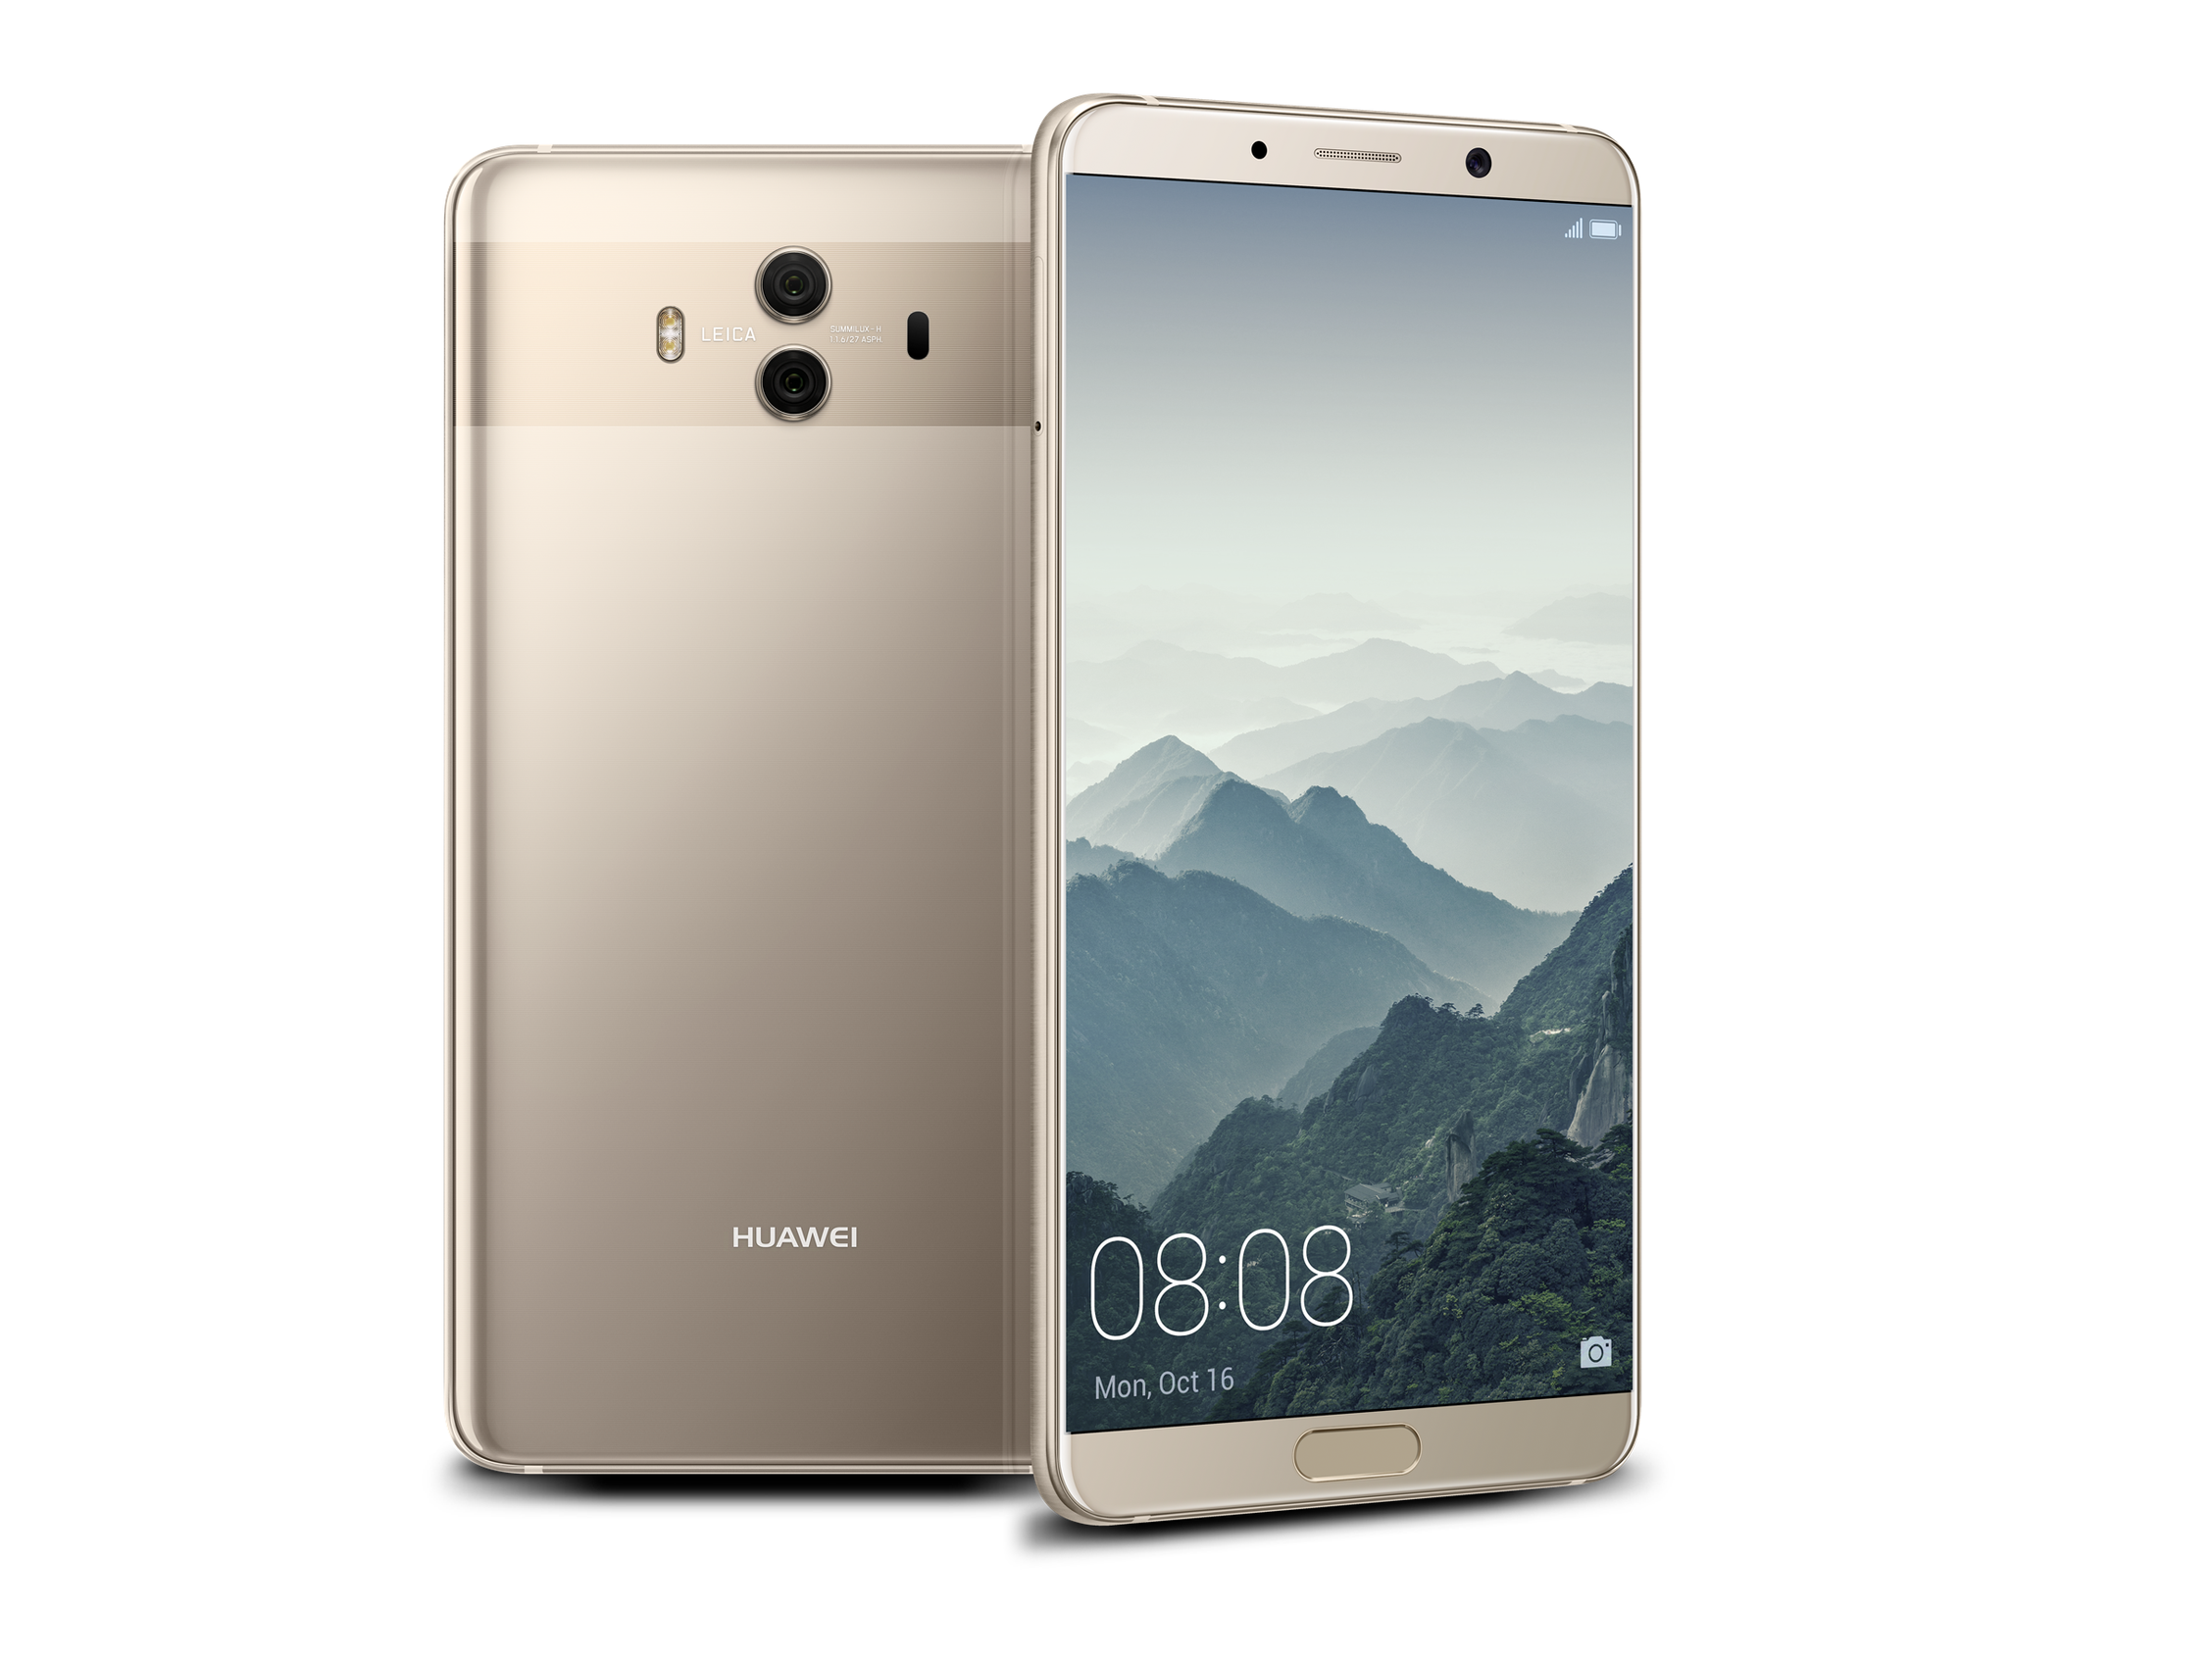 Huawei unveils Mate 10 and Mate 10 Pro with Leica dual-cam